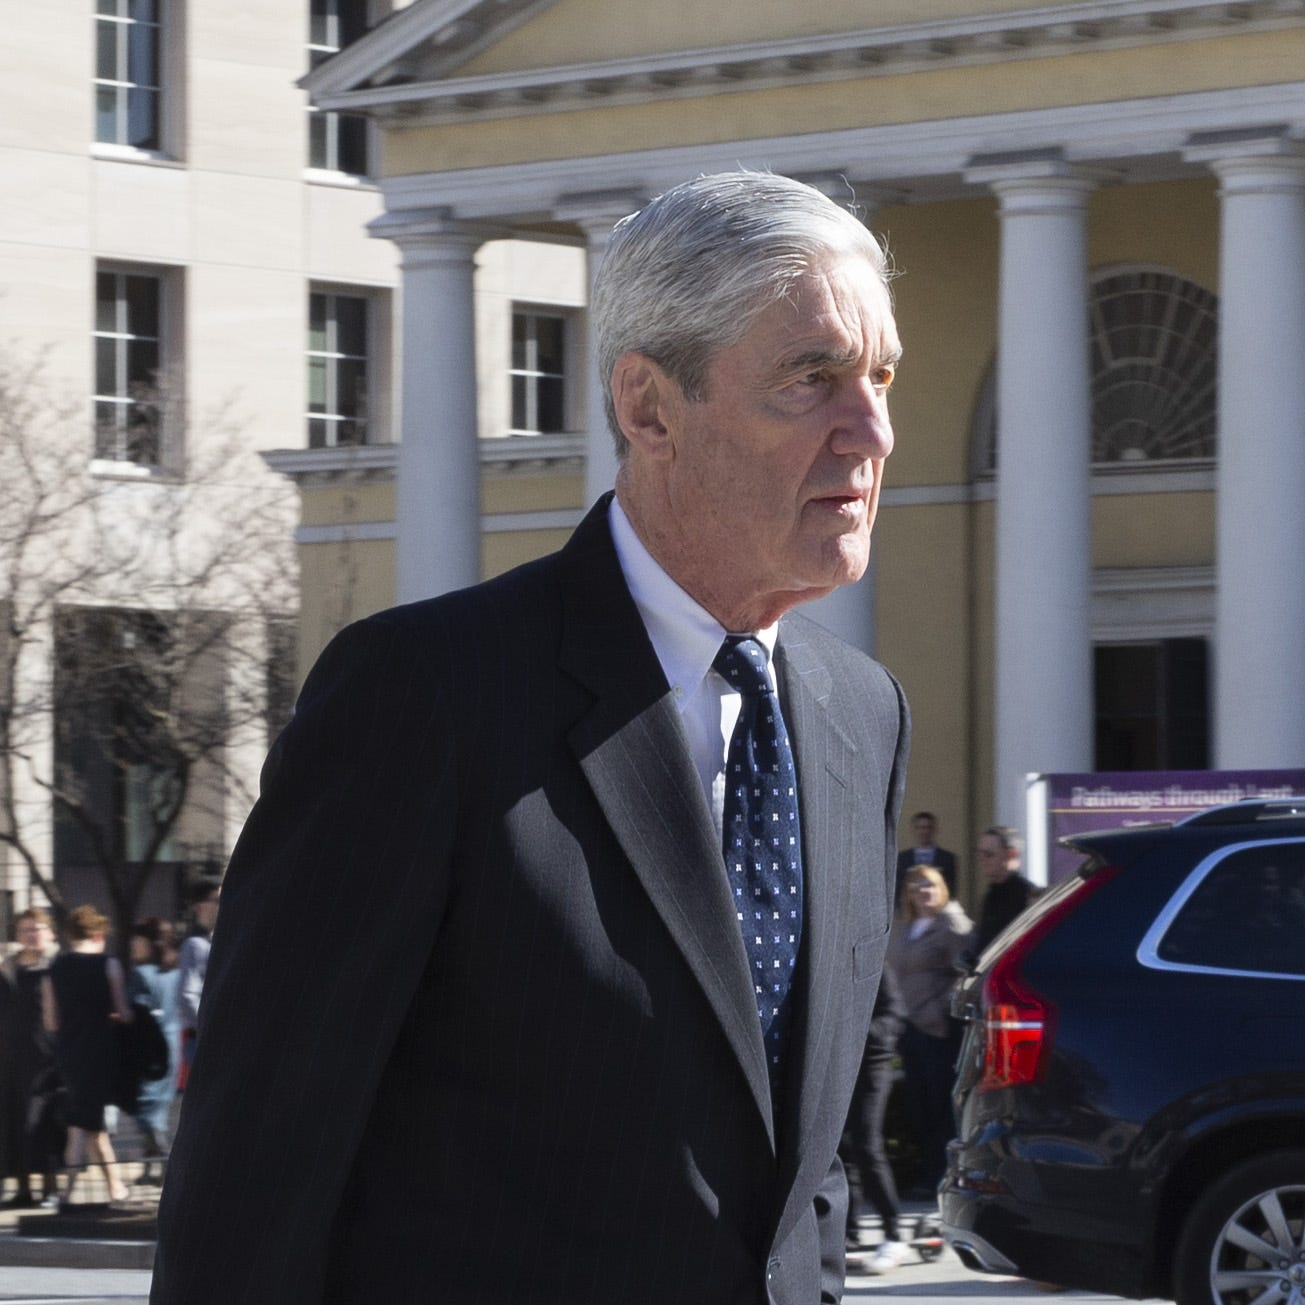 Special counsel Robert Mueller on March 24, 2019, at a church across from the White House.